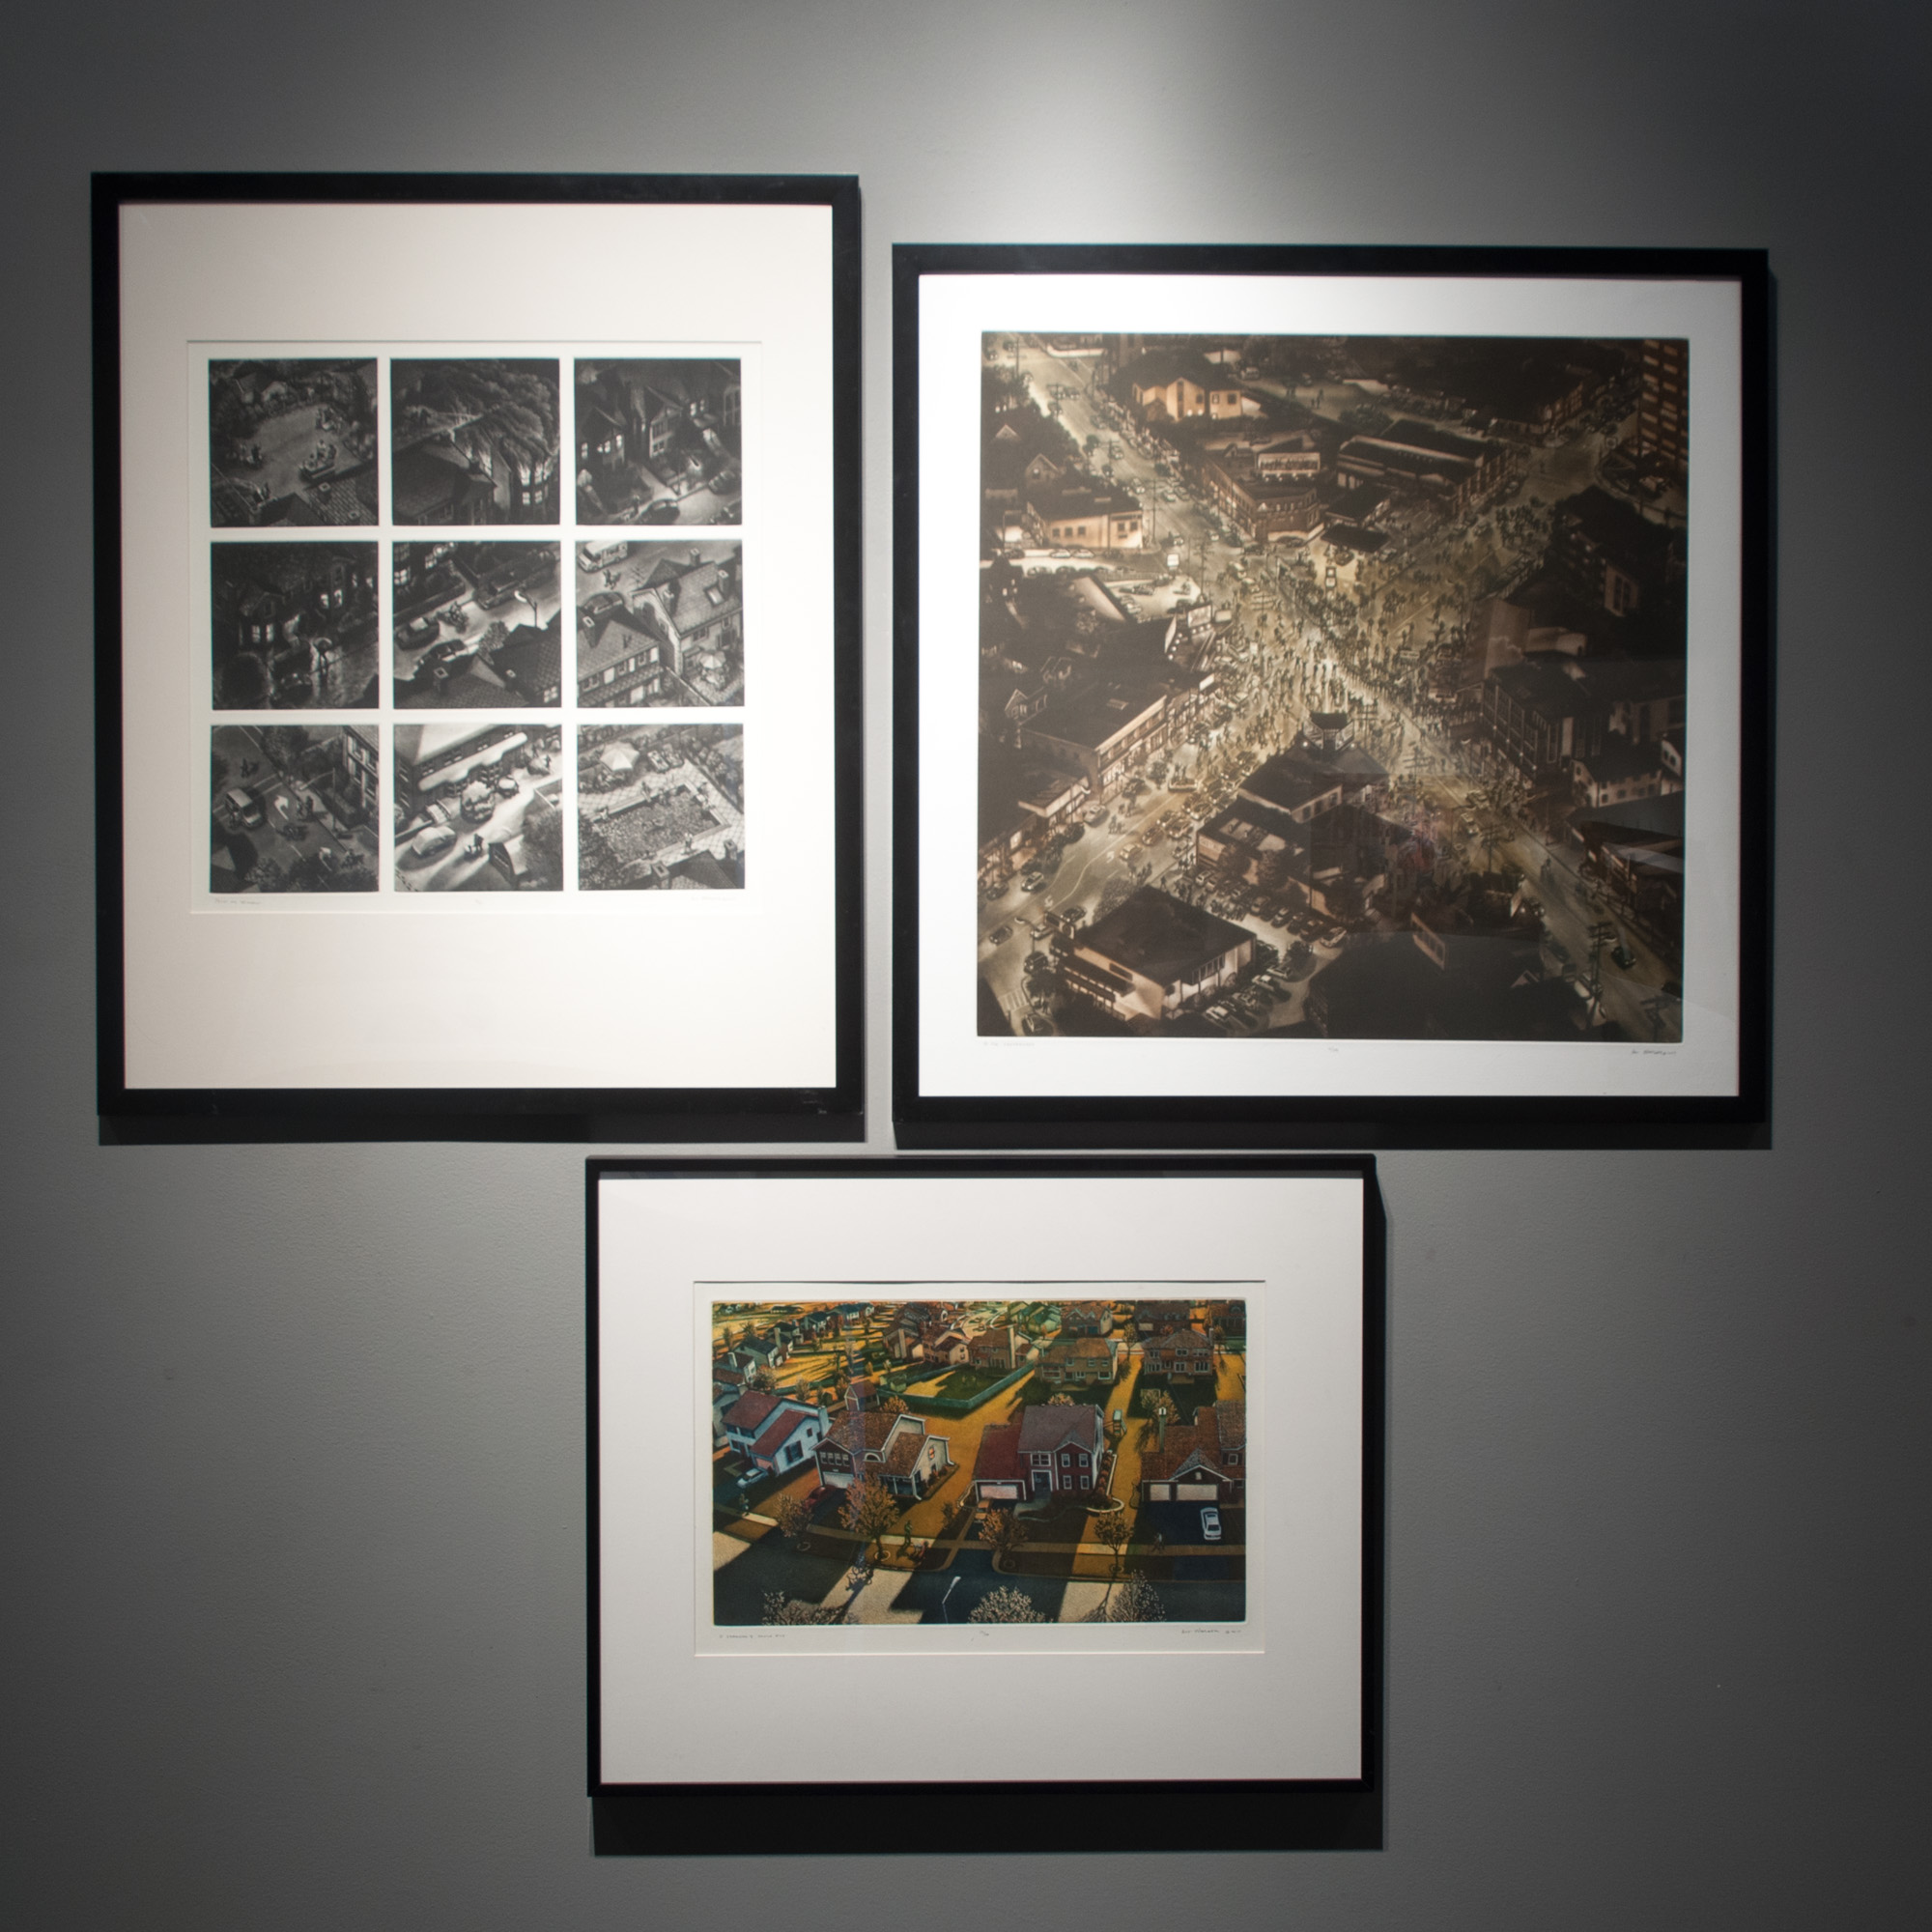 TL Art Werger From My Window mezzotint 18 x 18 inches ARW 003G TR Art Werger At the Crossroads mezzotint 24 x 24 inches ARW 001G B Art Werger I Dreamed I Could Fly color etching & aquatint 12 x 18 inches ARW 002G